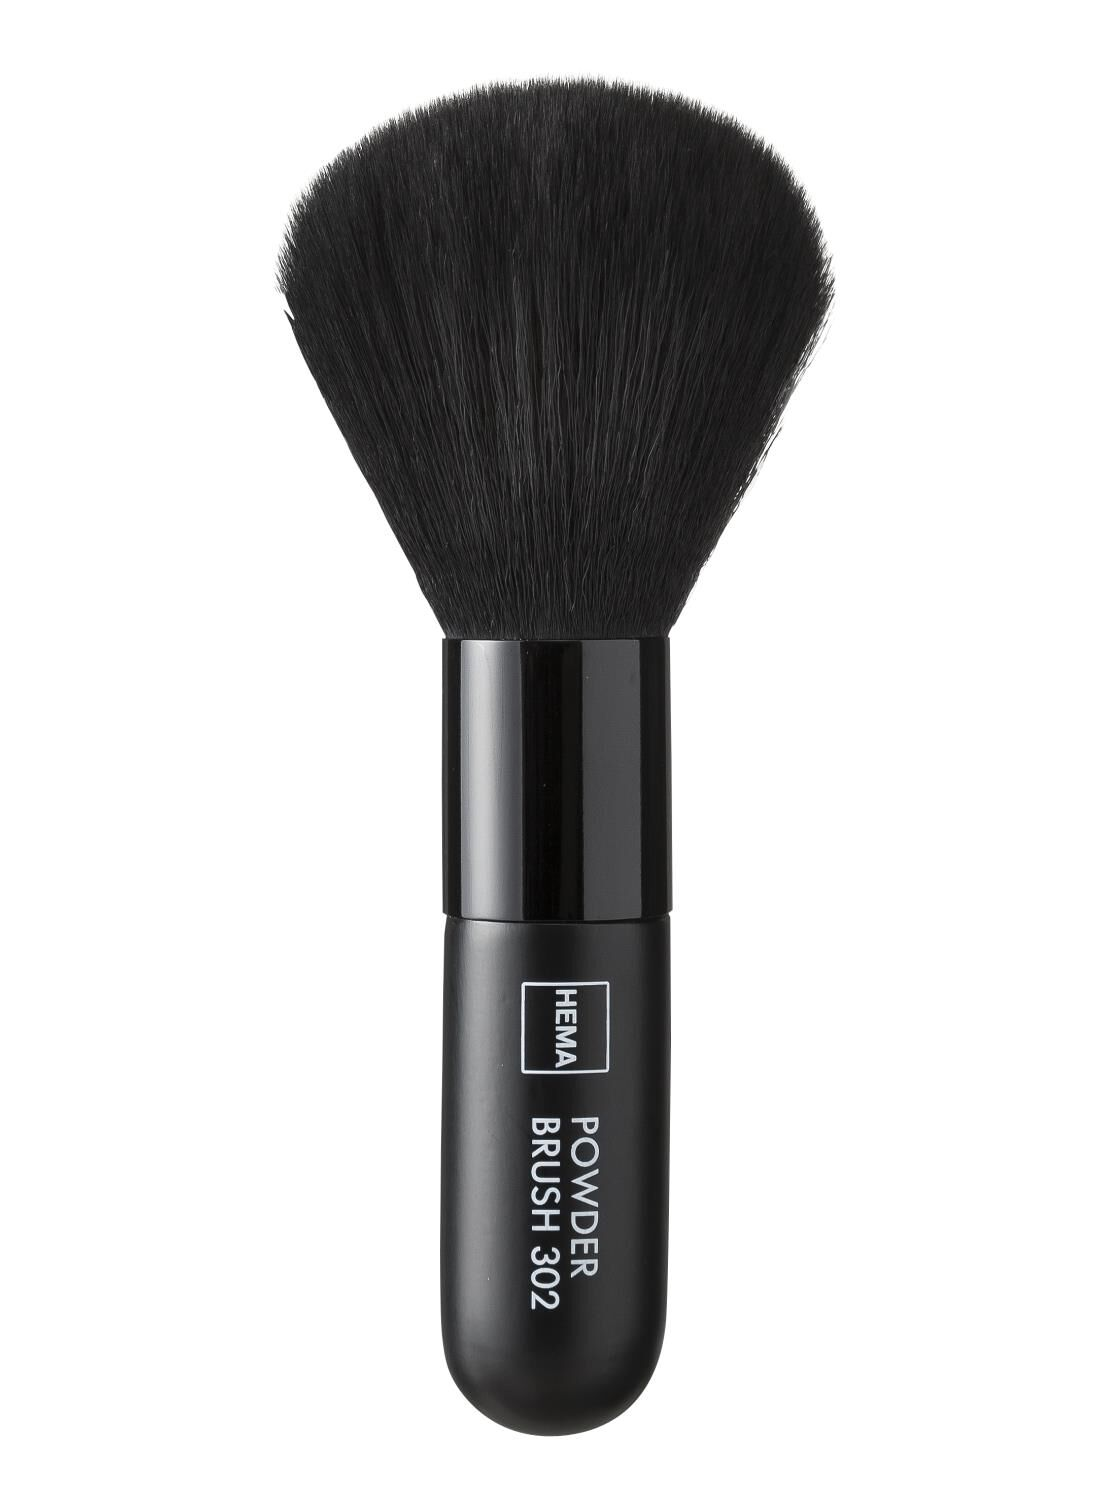 HEMA Powder Brush 302